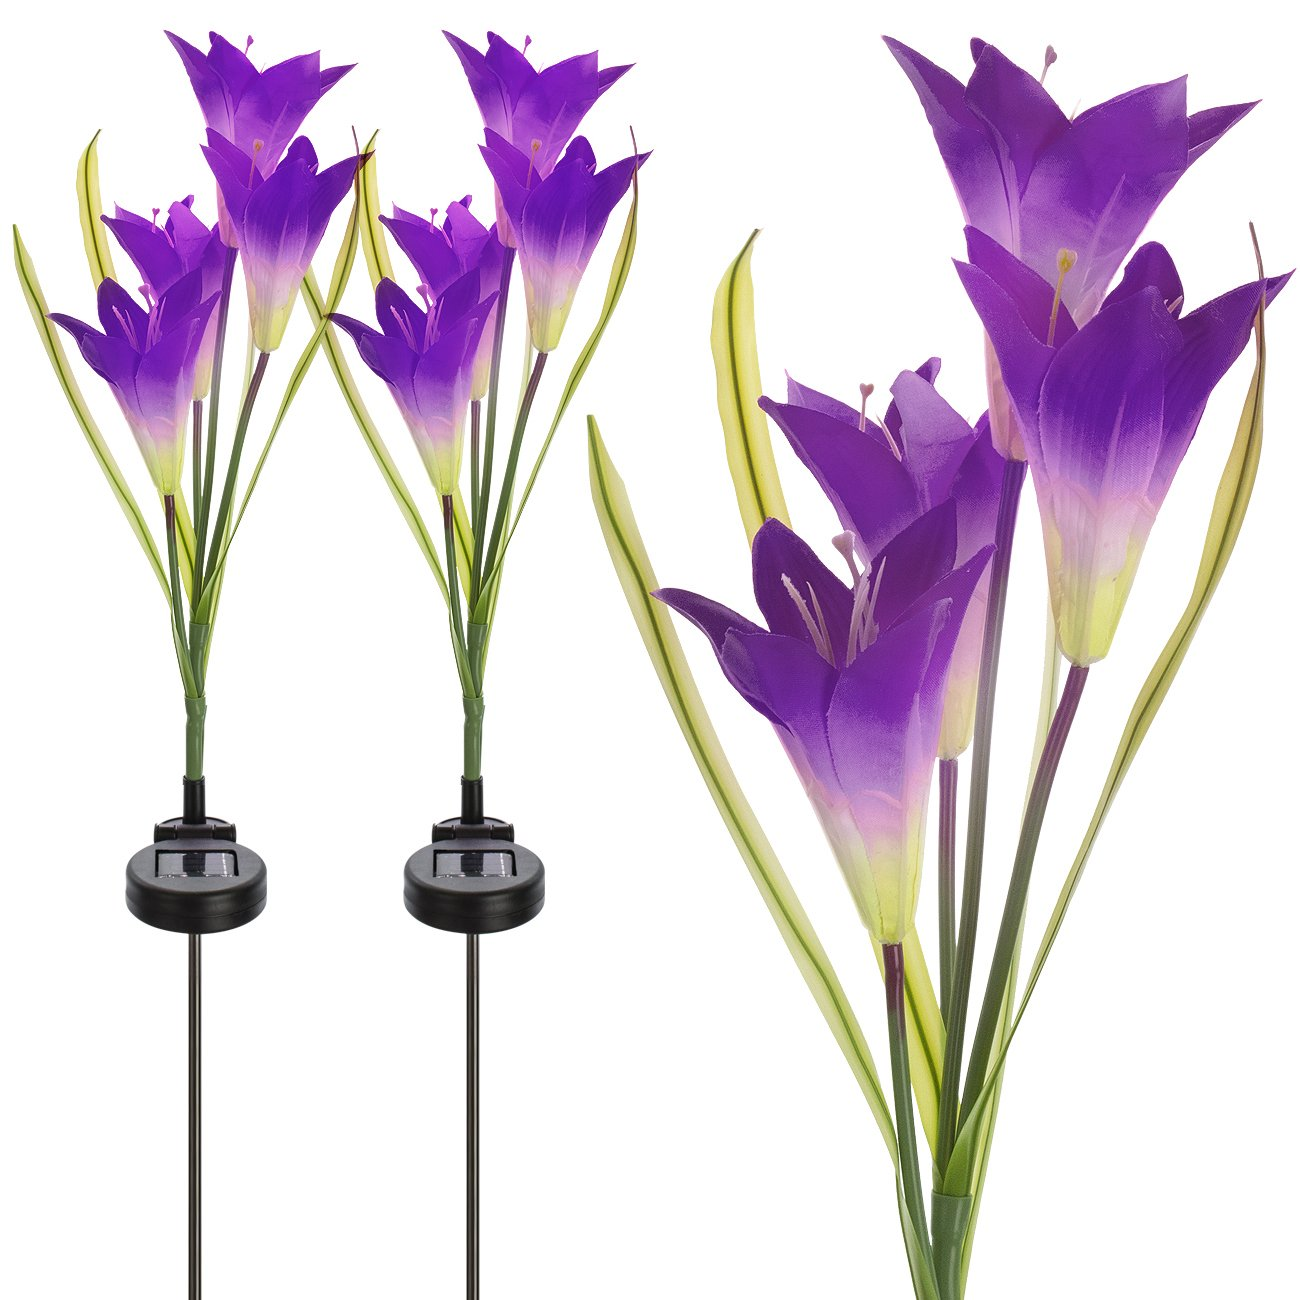 Sorbus Solar Light Flower Lily Stakes, Outdoor LED Garden Flowers for Night Lighting, Solar Path Walkway, Lawn, Garden, Pond, Patio, Gravestones, Special Occasions, etc (2-Pack,Purple)